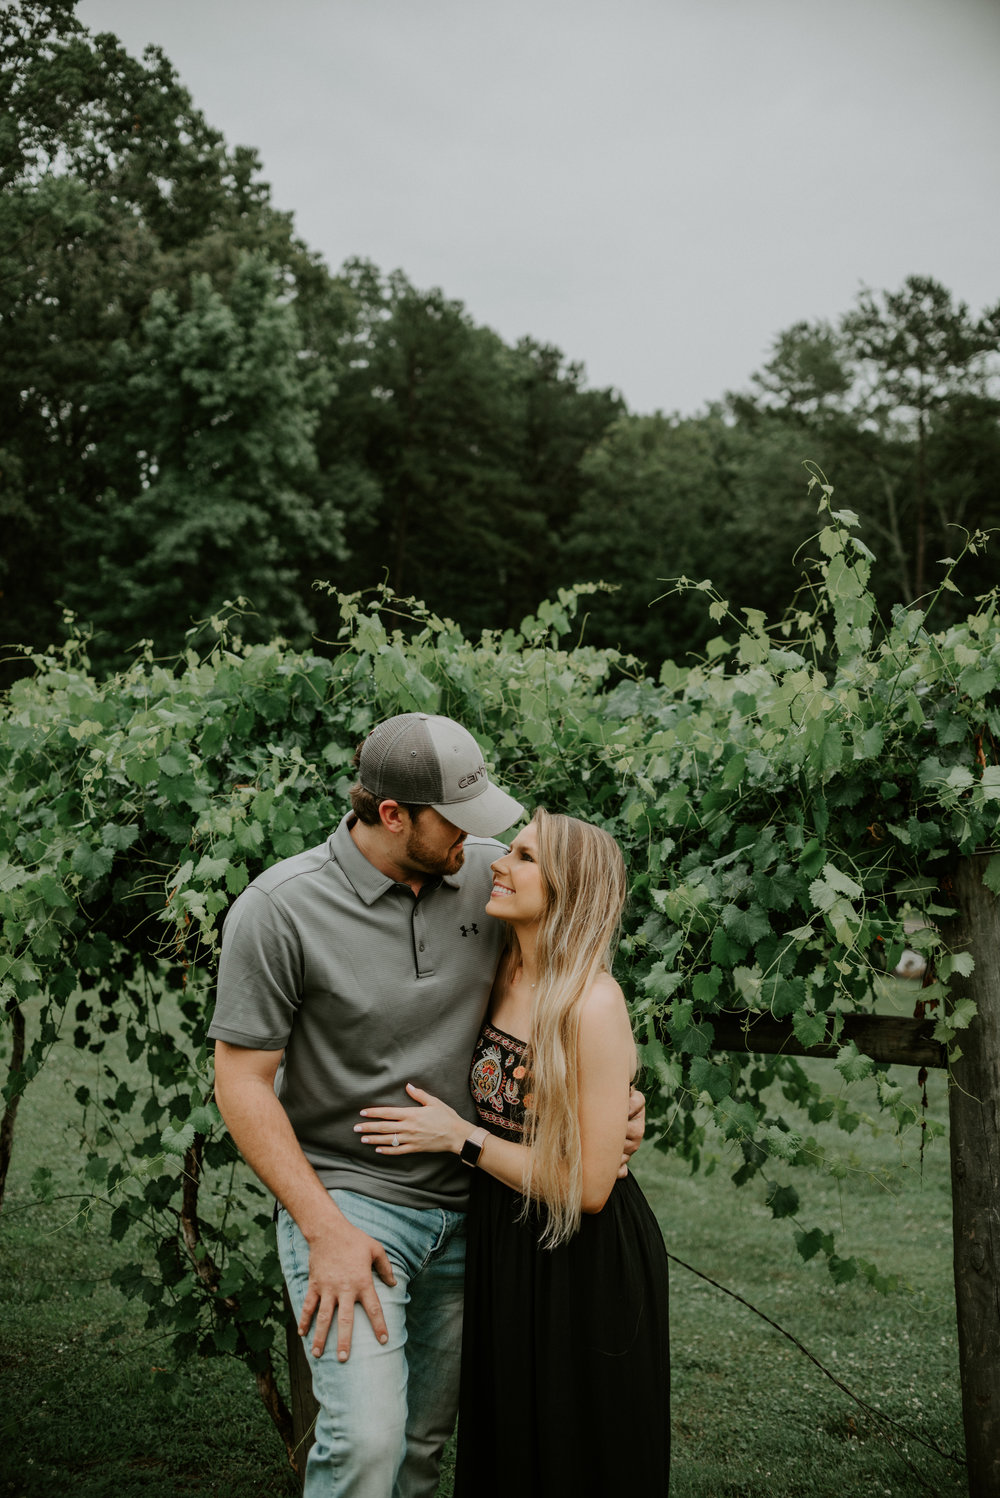 WonderlyCreative_Proposal_6.23.18_Makenzie&Carson_-82.jpg